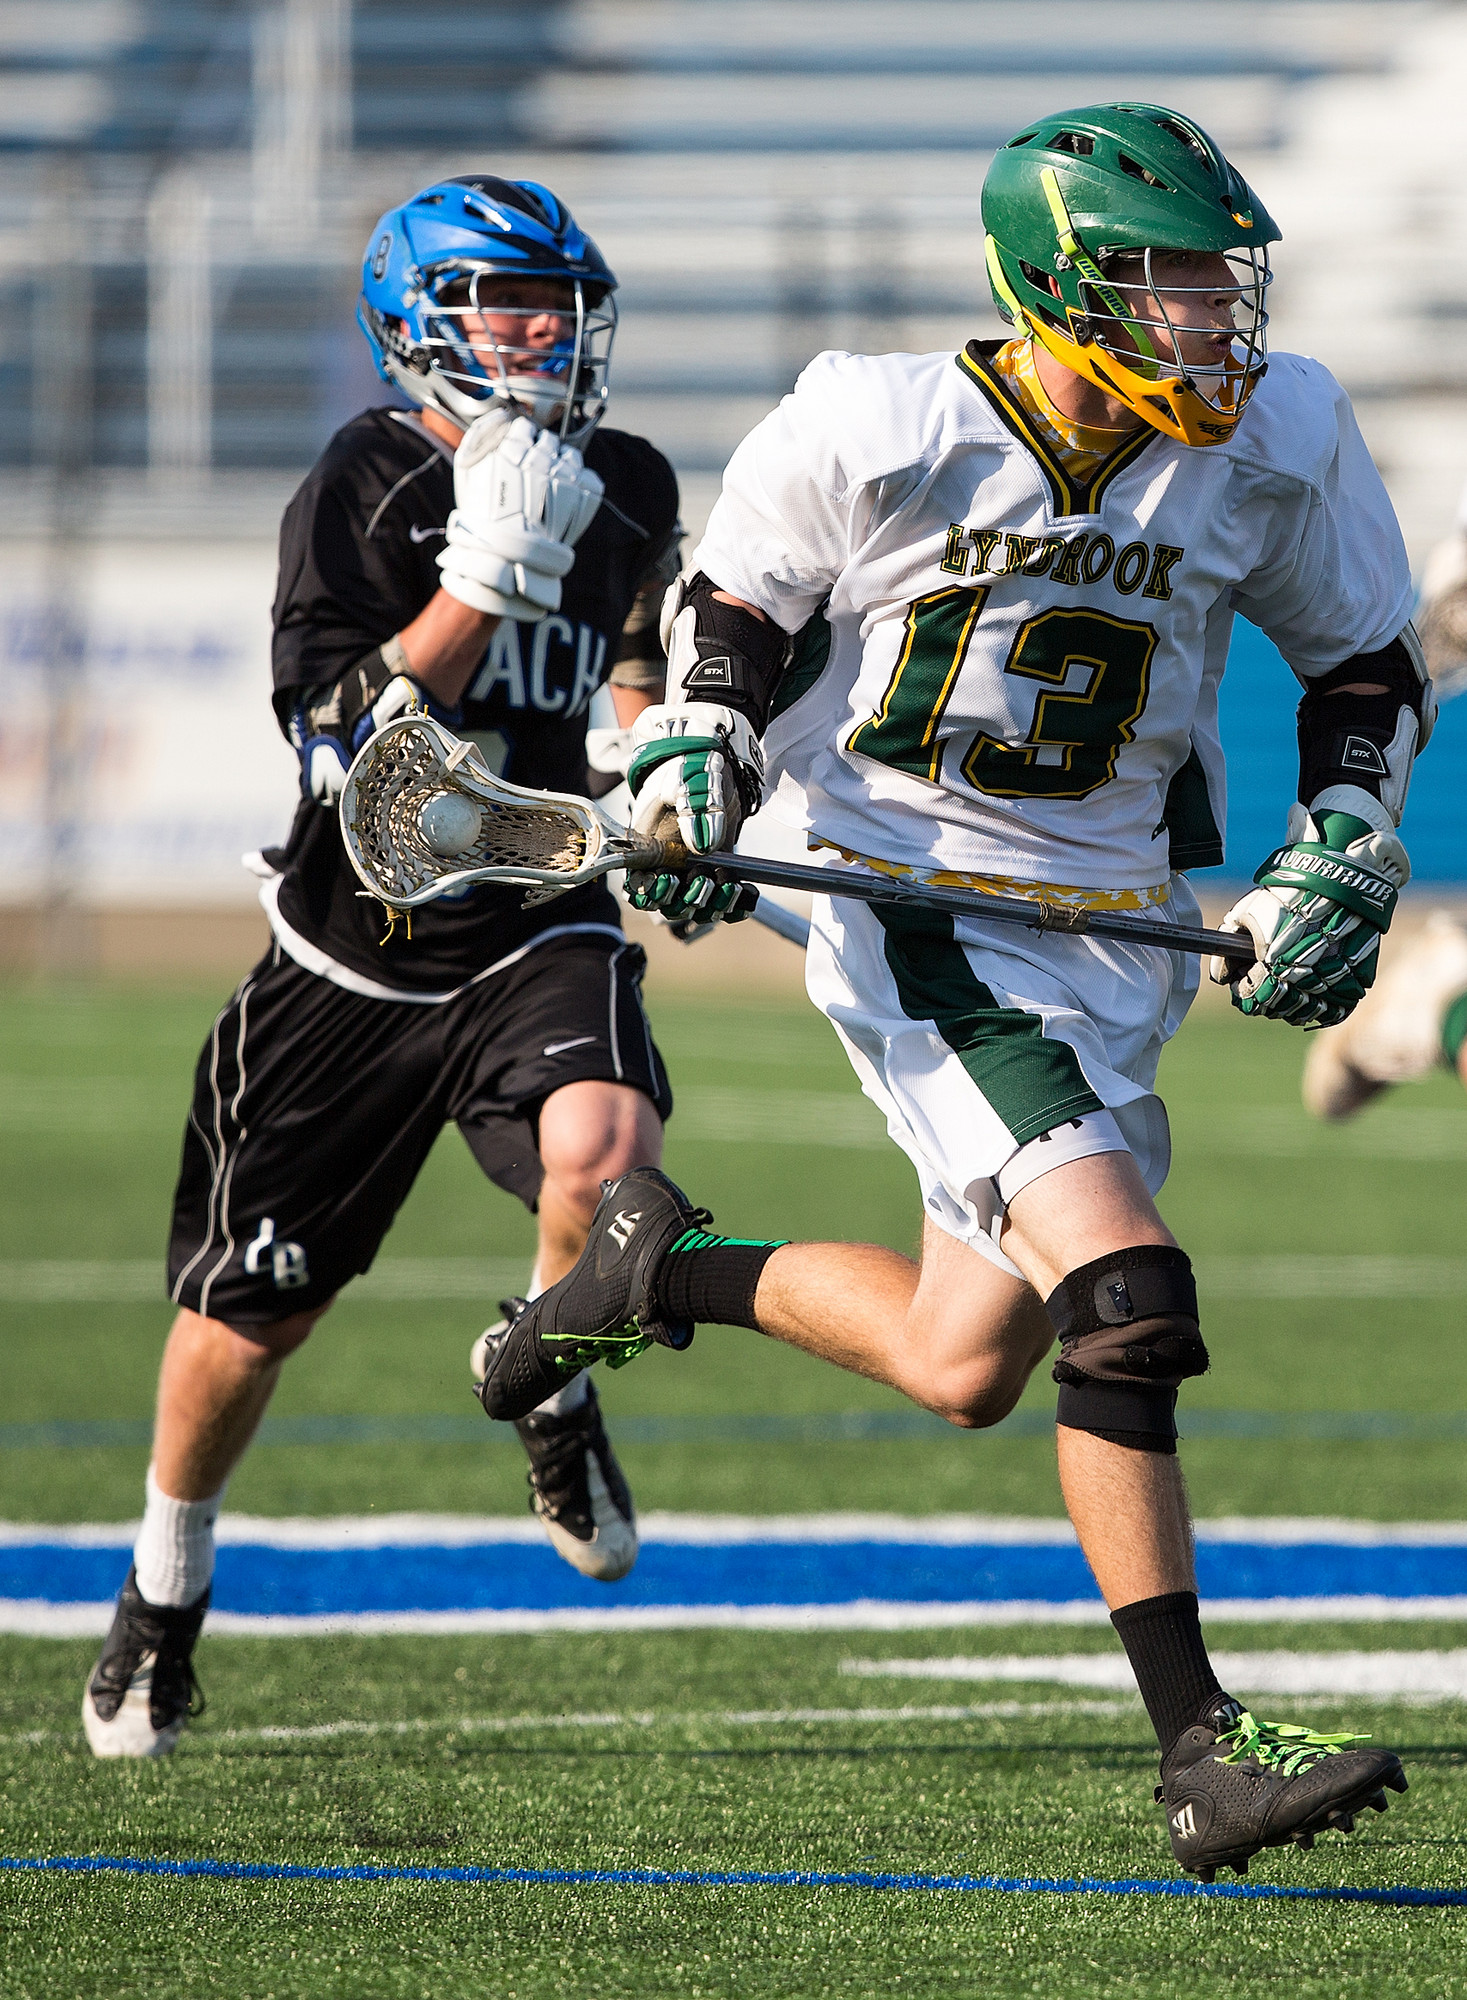 Lynbrook's Joe Grossi, right, raced upfield during the Owls' 8-4 Class B quarterfinal playoff defeat to Long Beach on May 16.